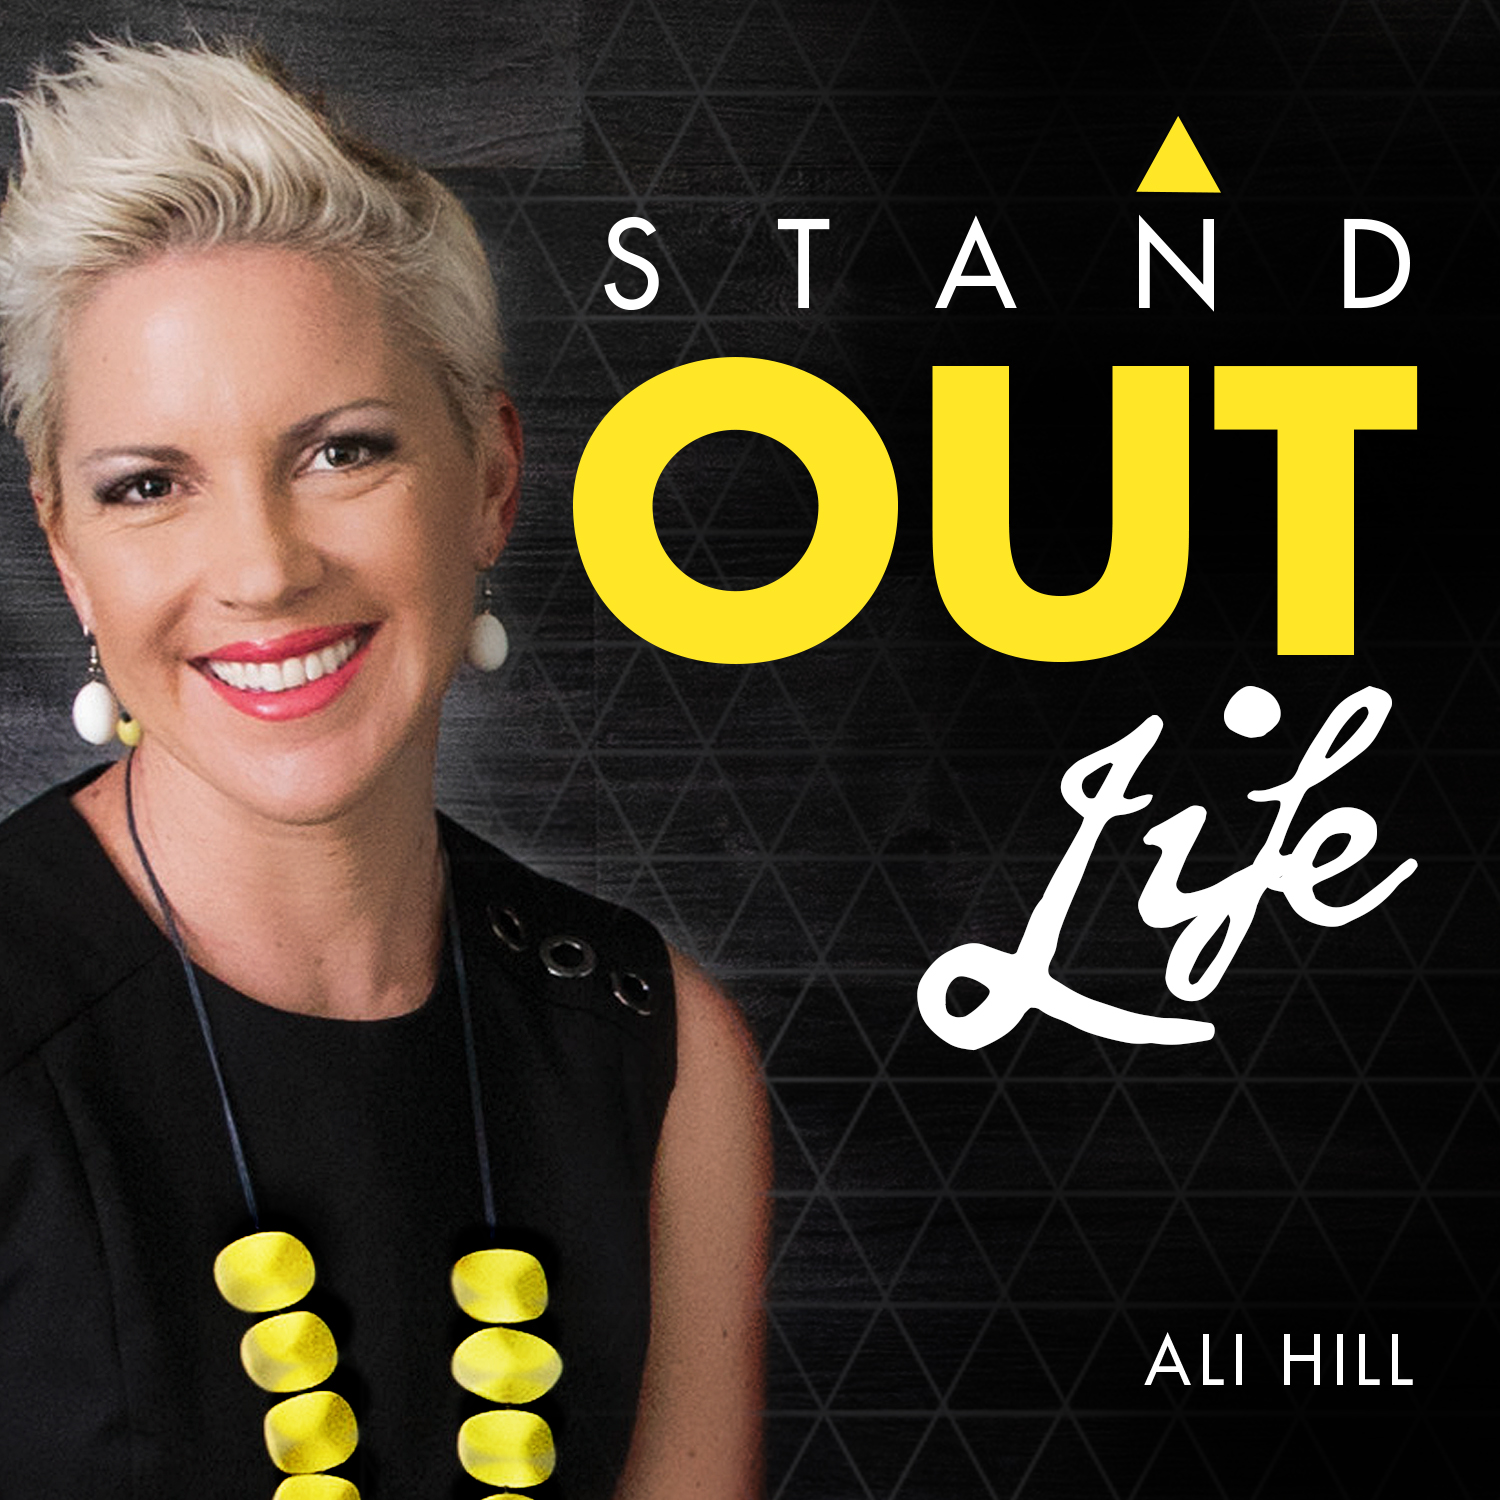 THE PODCAST    This podcast series featuring some of Australia's most influential women and men, including Carolyn Creswell, Janine Allis, Emma Isaacs and many more.